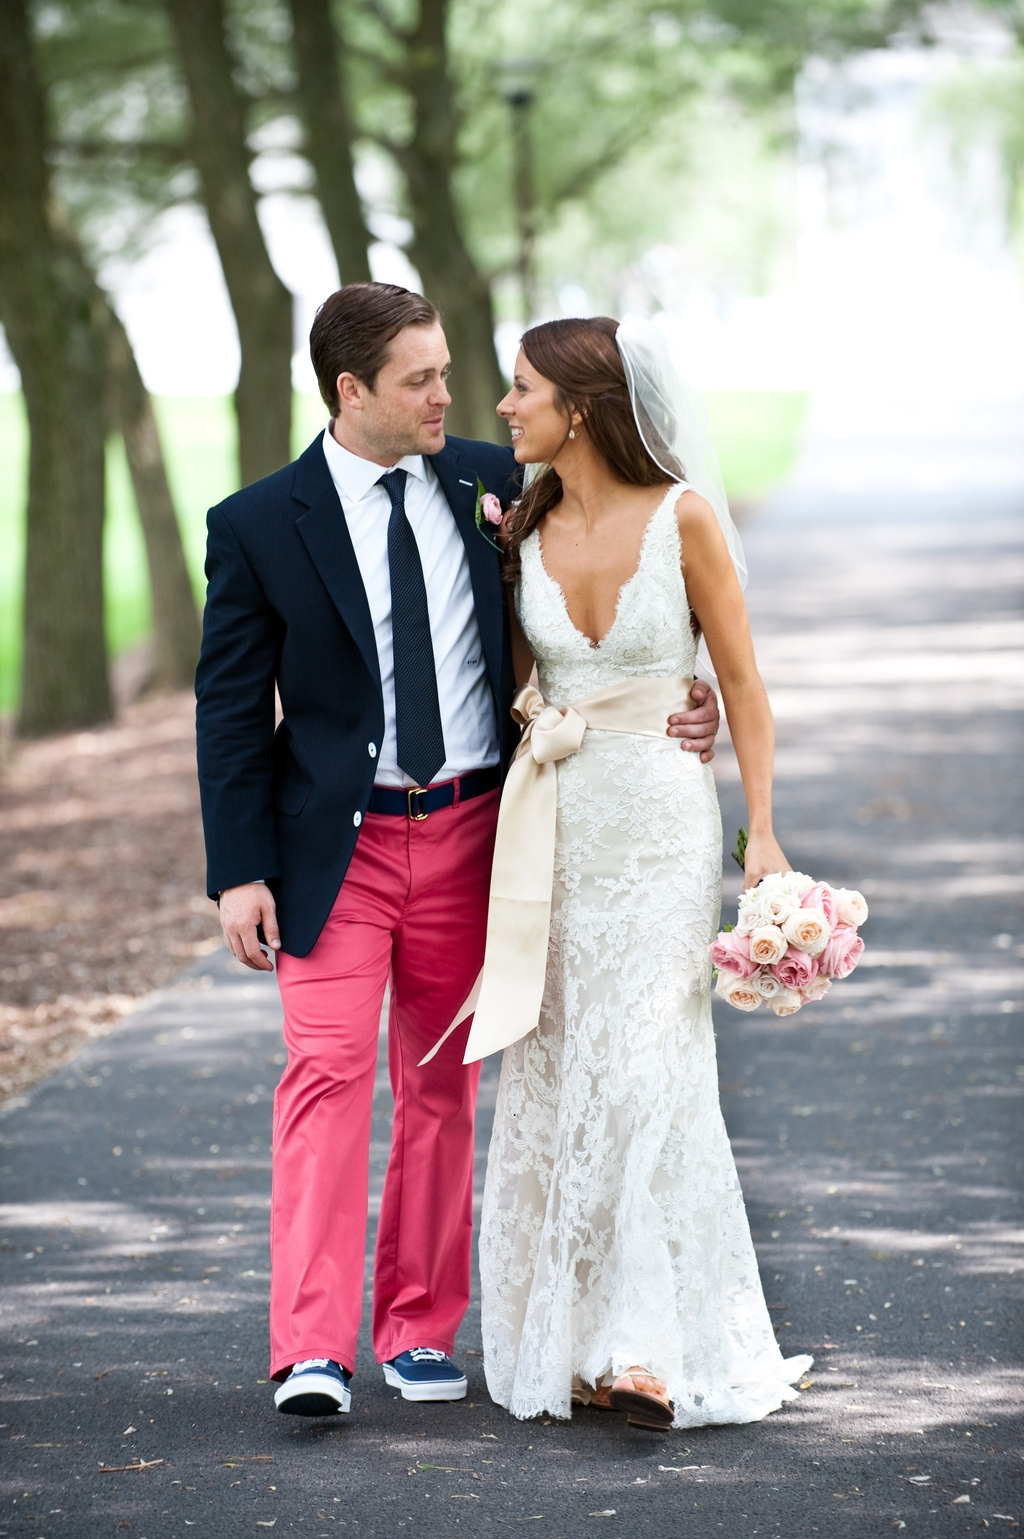 Bonobos-wedding-collection-bride-groom-lace-wedding-dress.full